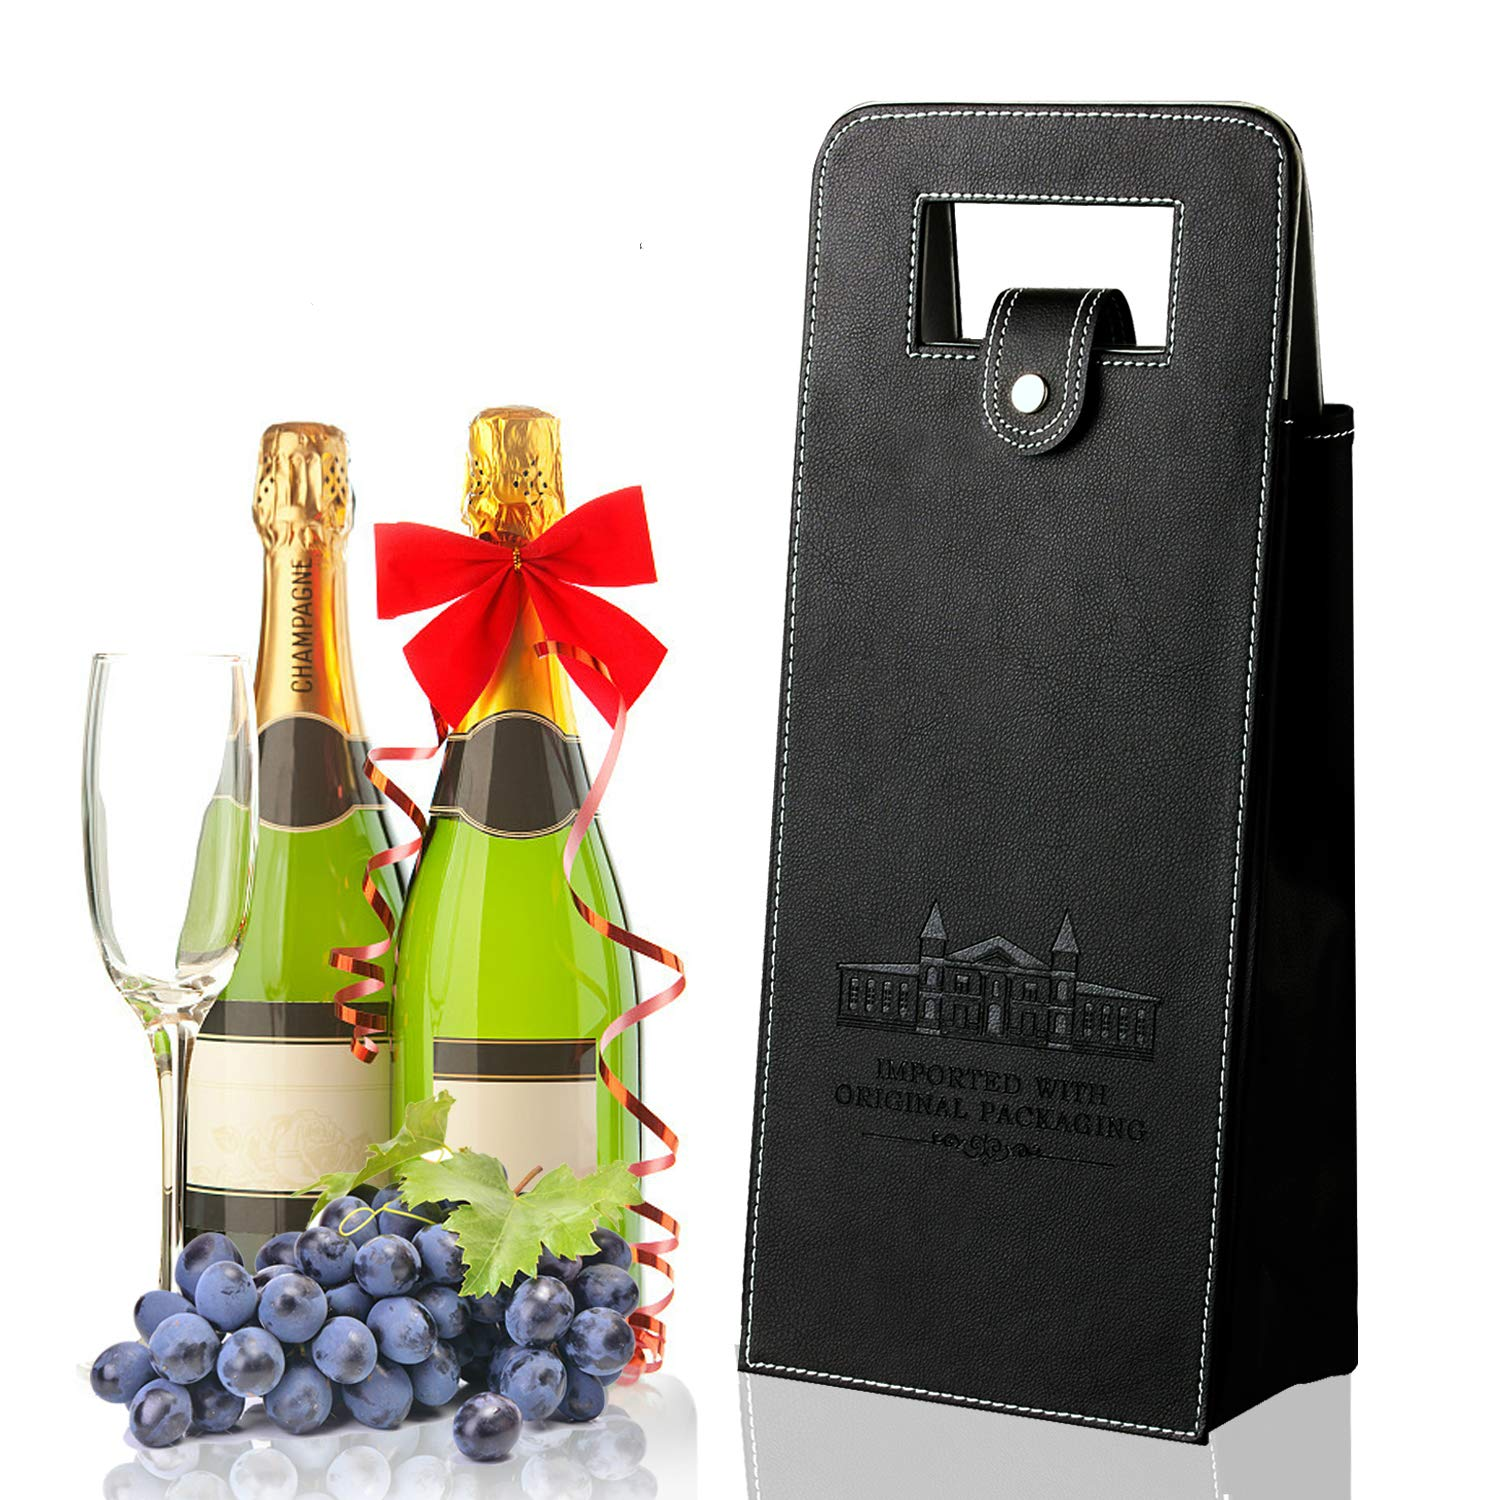 Buy Sunfuny Wine Gift Bags Upscale Reusable Leather Wine Tote Bag Carrier, Double Layered Leakproof Protective 2 Bottles Wine/Champagne/Beer Travel Carrying Bag for Picnic, Business Gift Online at Low Prices in India -